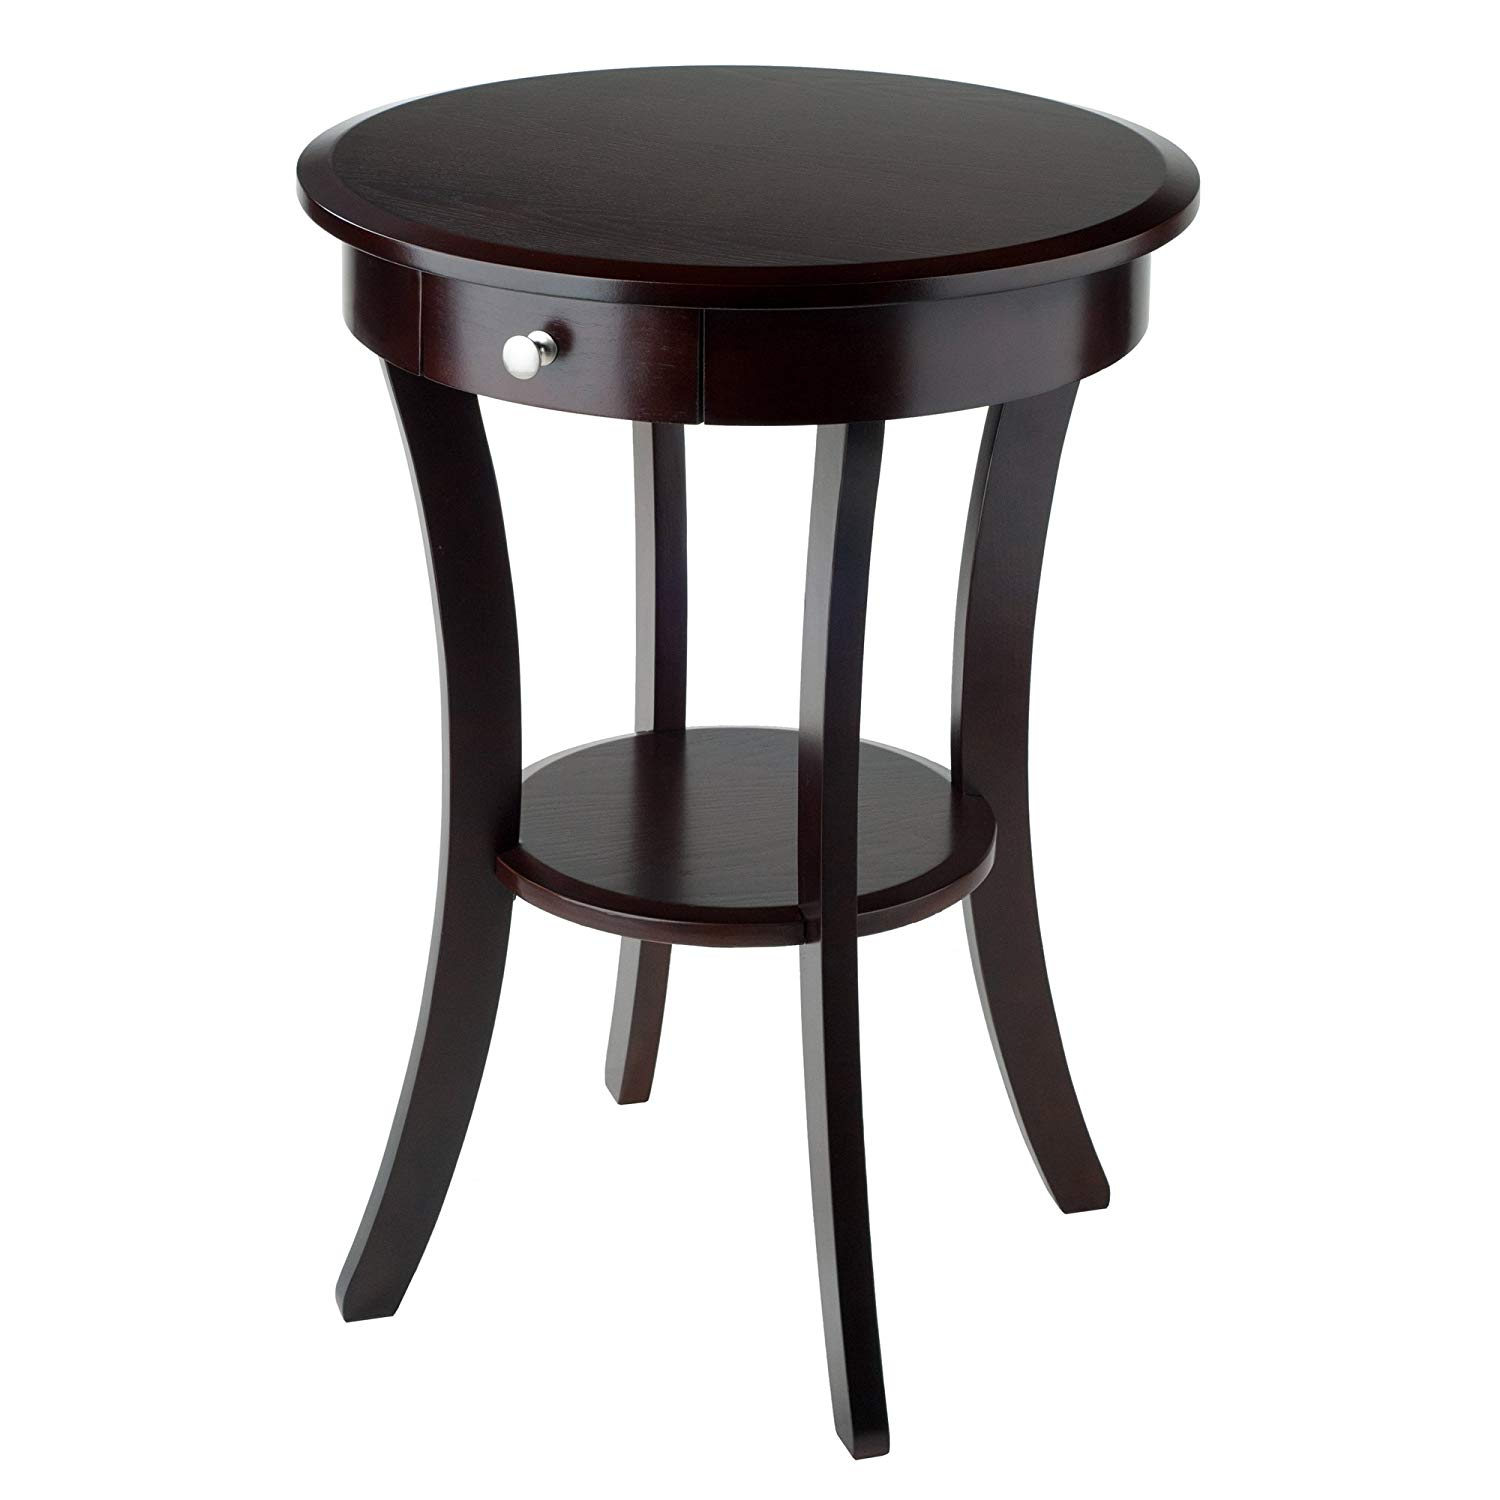 winsome wood sasha accent table cappuccino pottery barn flower kitchen dining clip desk lamp threshold and marble coffee retro furniture ikea nest tables oil rubbed bronze side